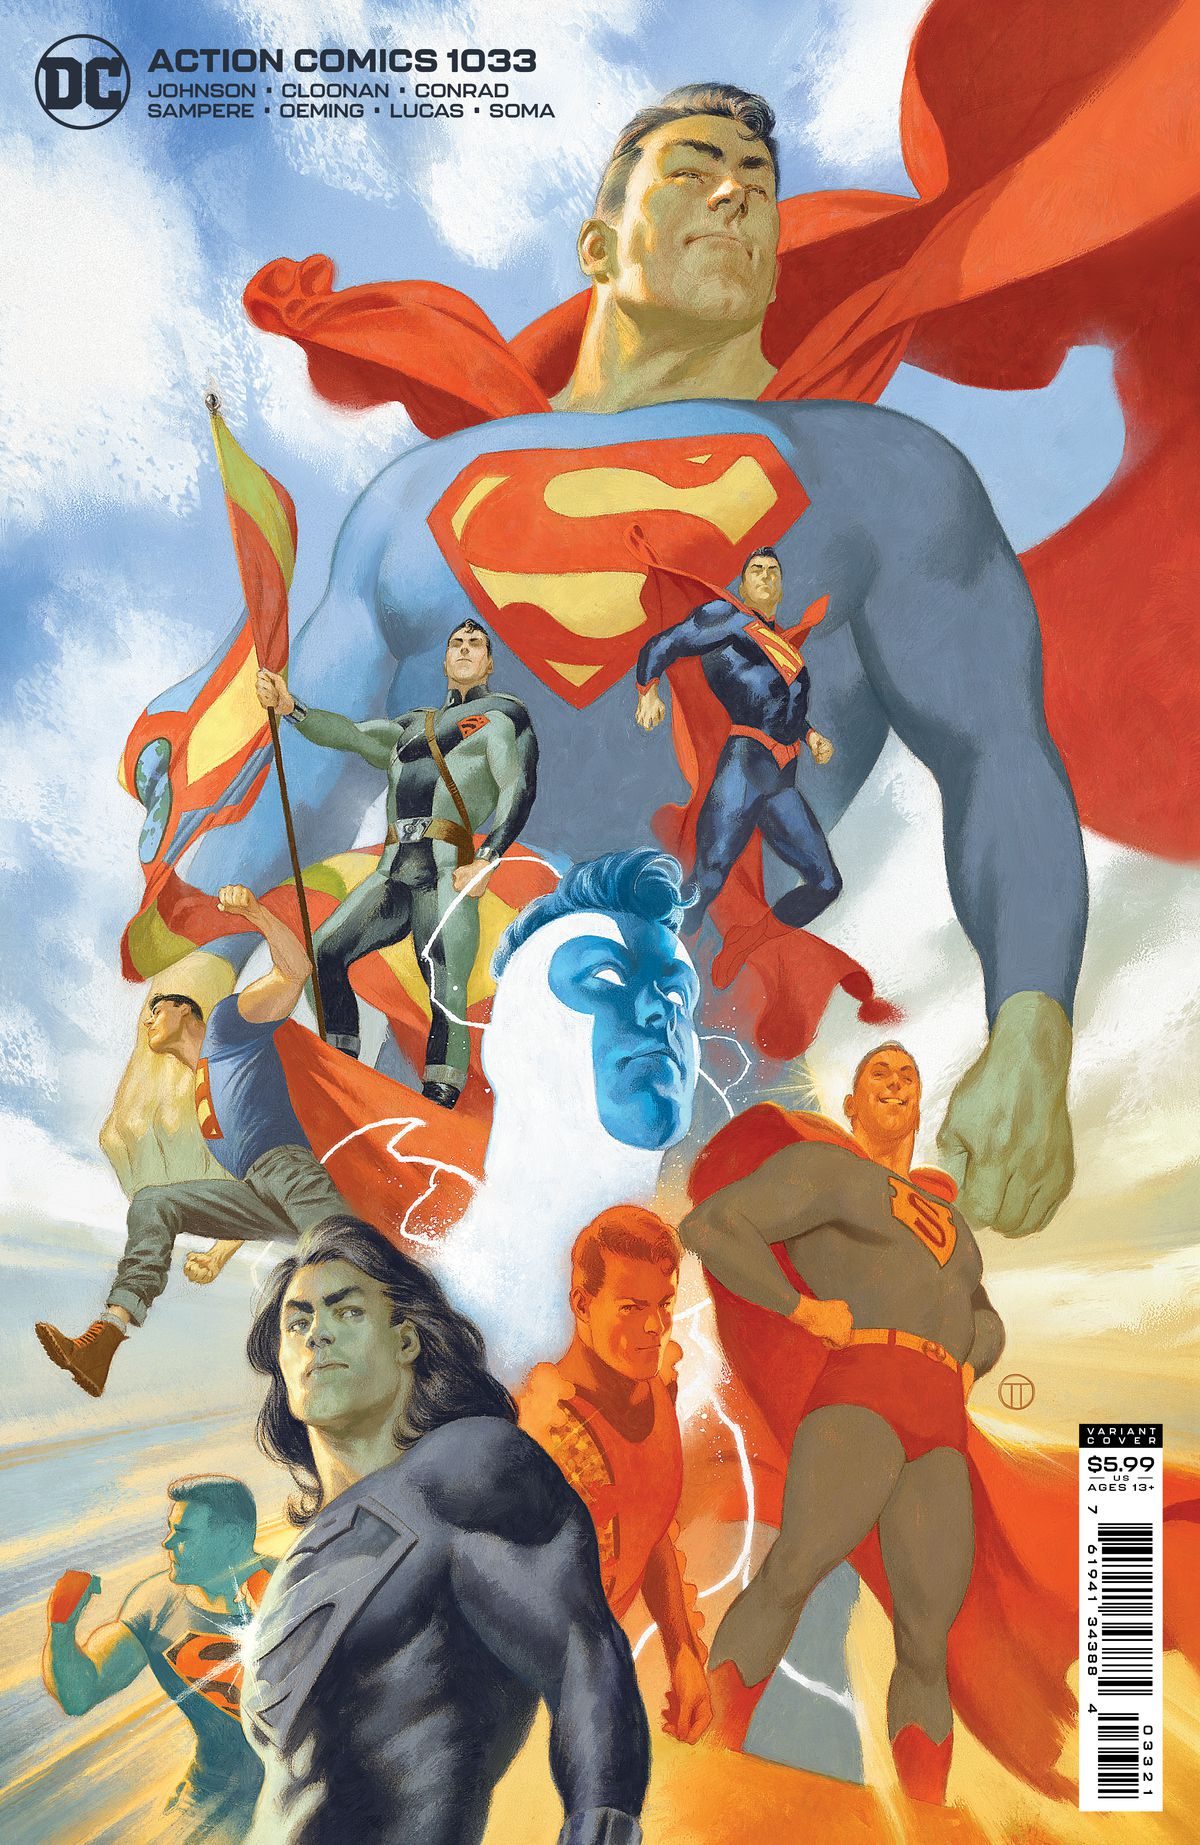 A collage of different versions of Superman, including Grant Morrison's young New 52 Superman, modern Superman, resurrected long-haired Superman, Golden Age superman, Blue Superman, and more on the cover of Action Comics #1033, DC Comics (2021).